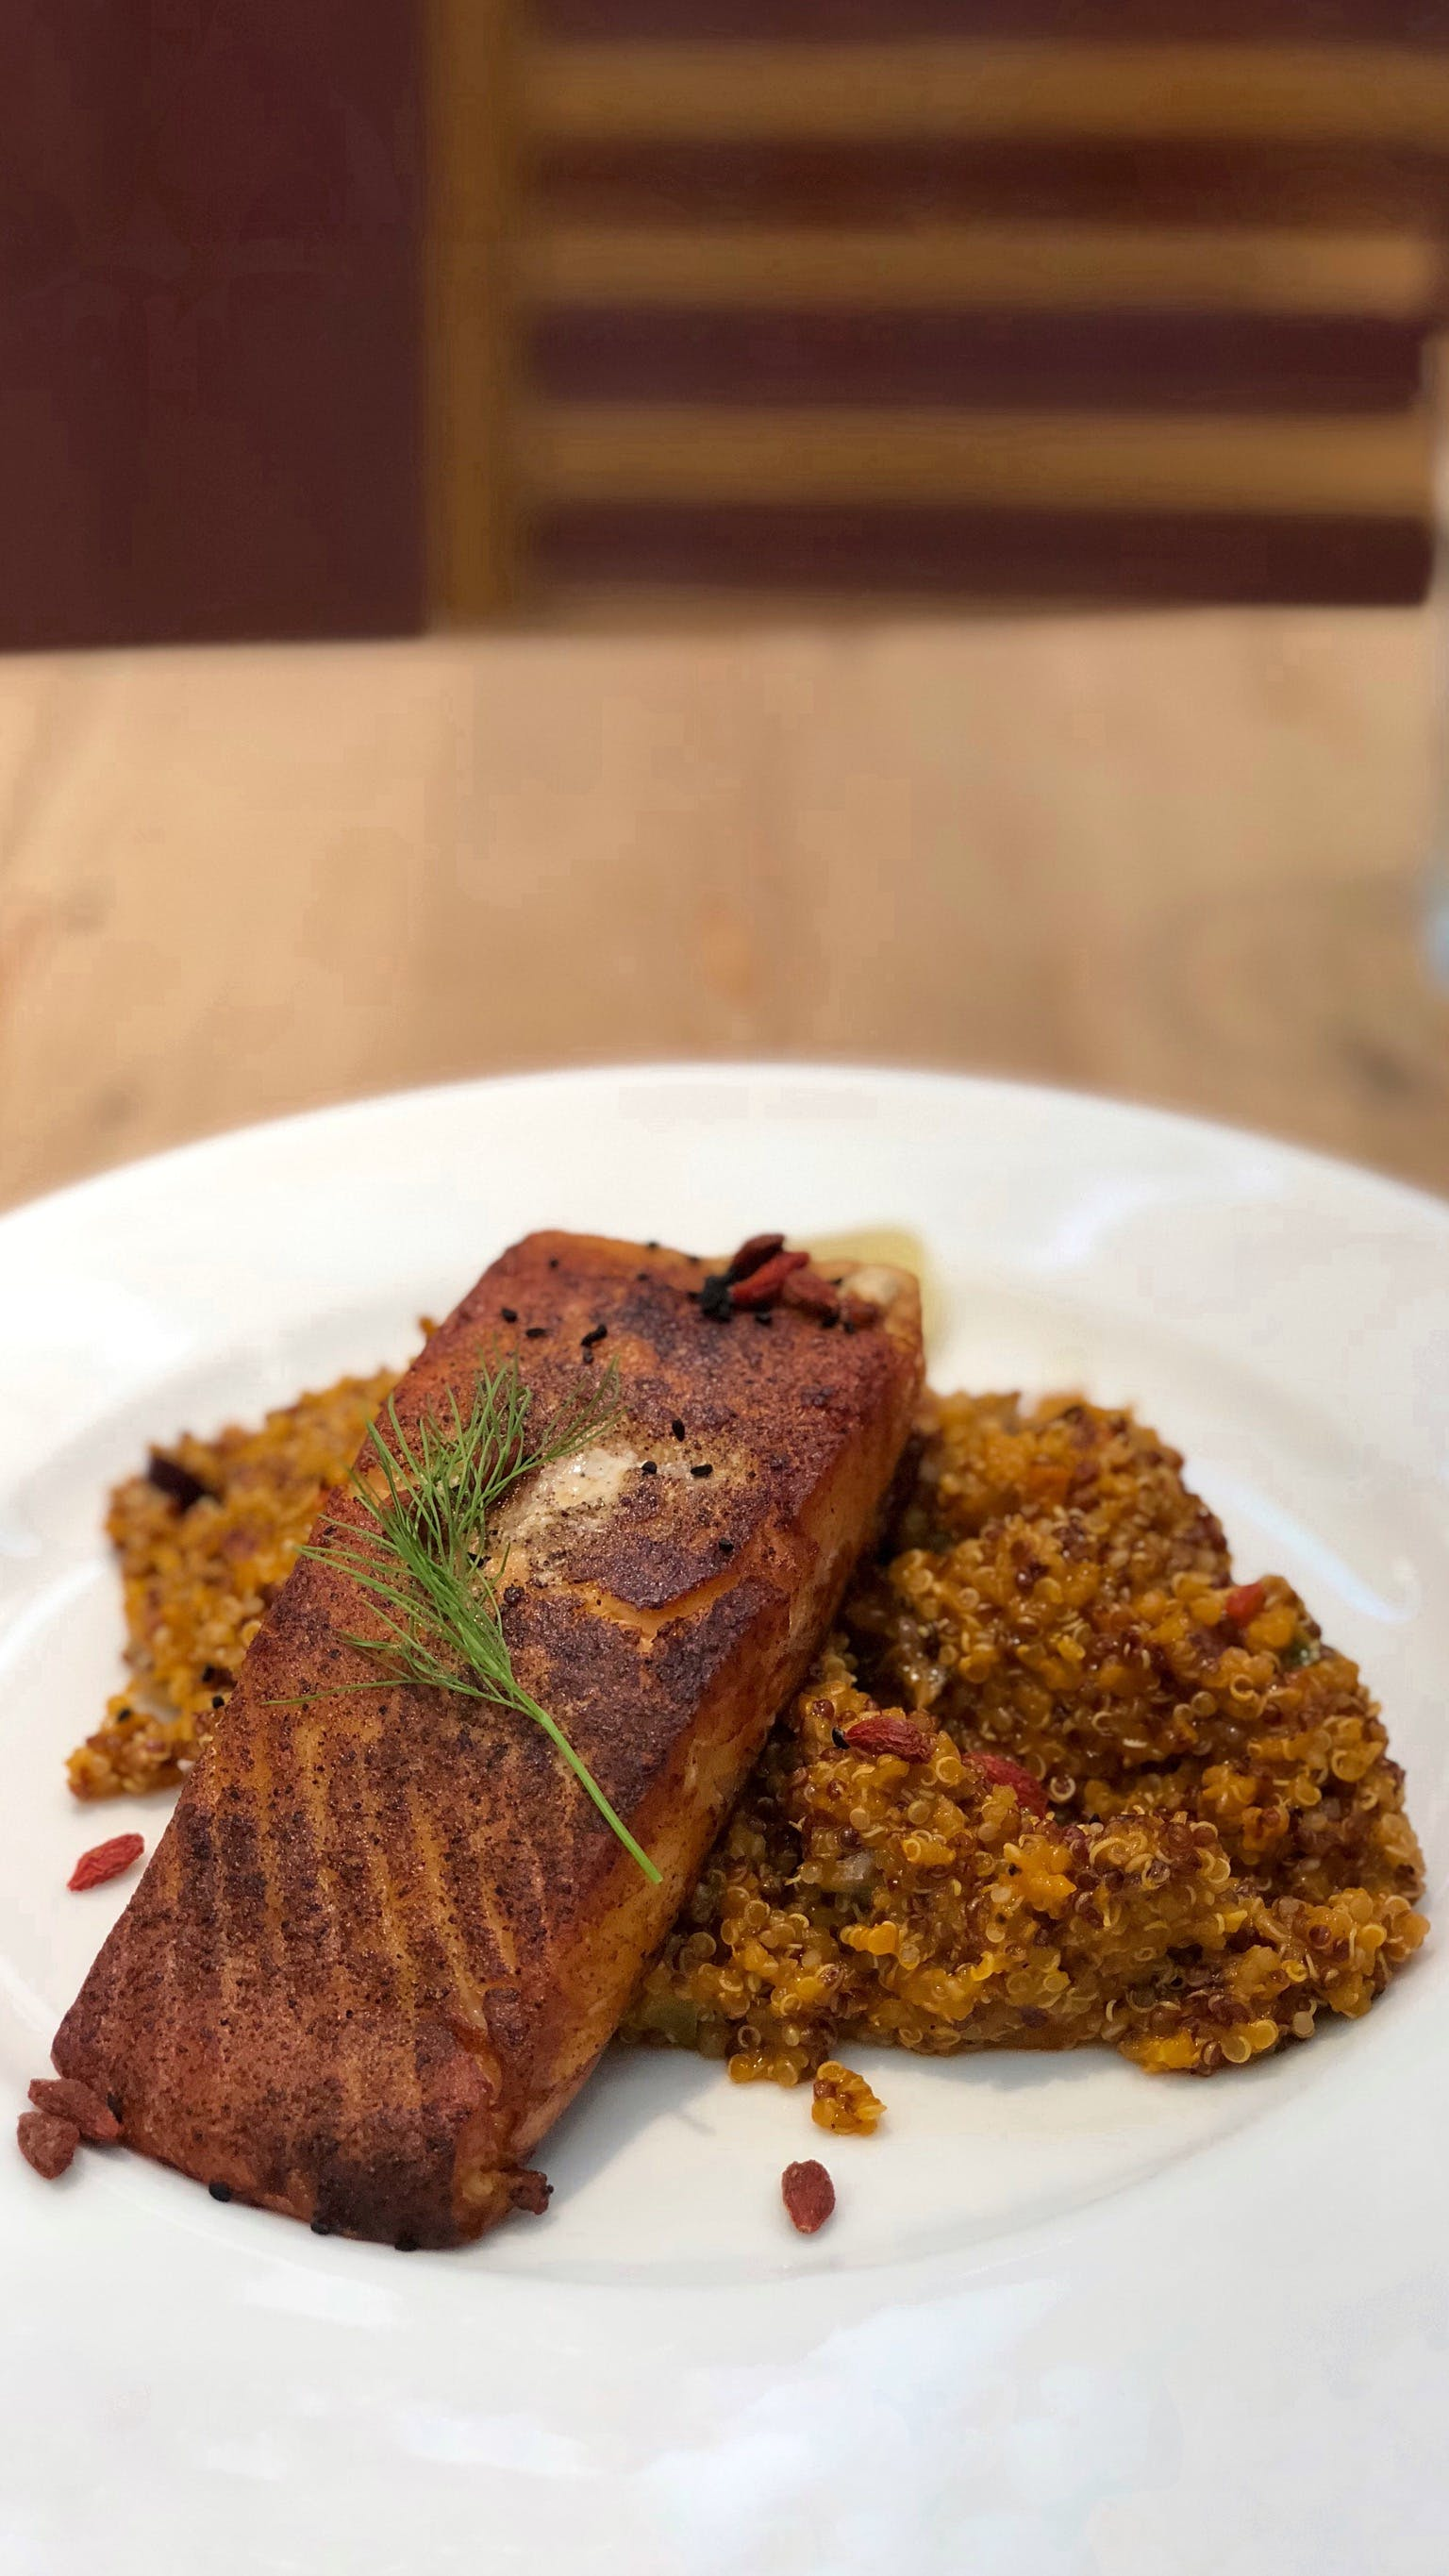 Free stock photo of lunch, foods, salmon, grilled